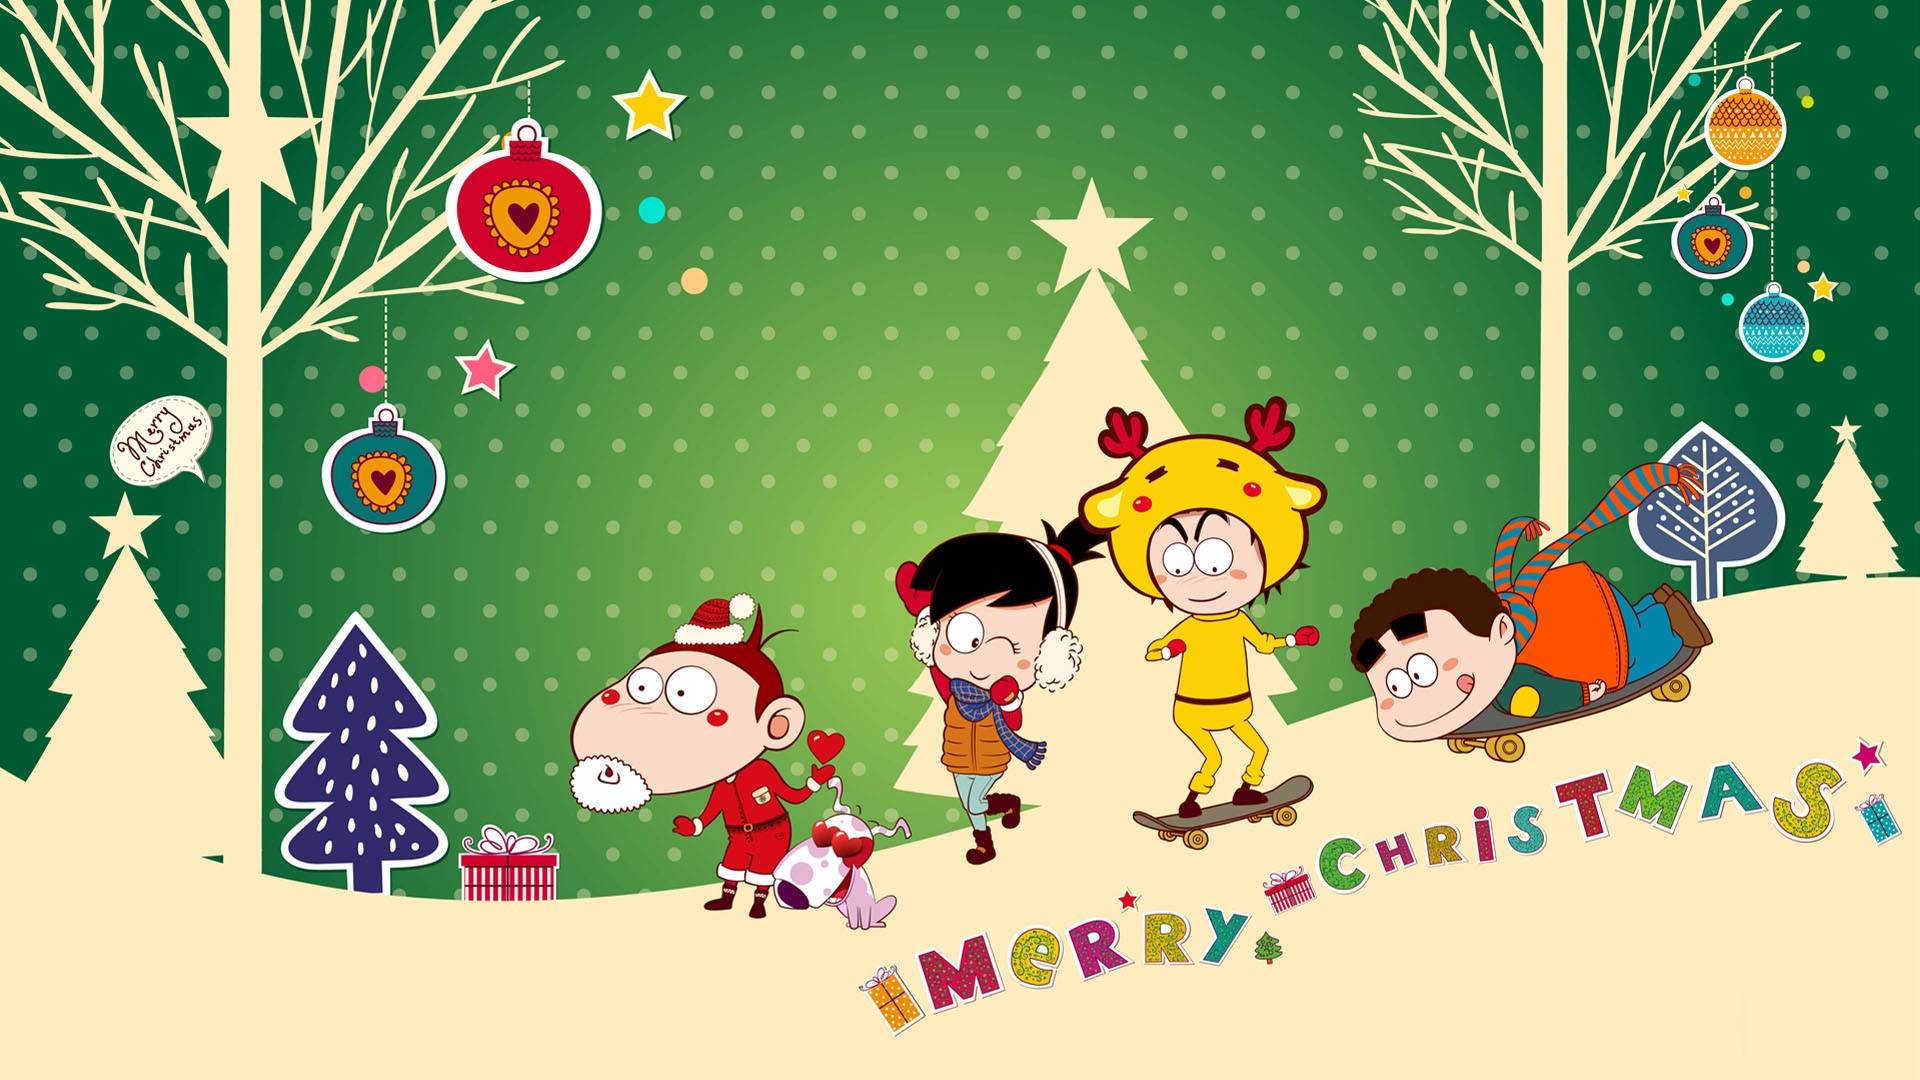 Cute Merry Christmas Wallpaper Backgrounds Christmas Backgrounds Free Download Pixelstalk Net